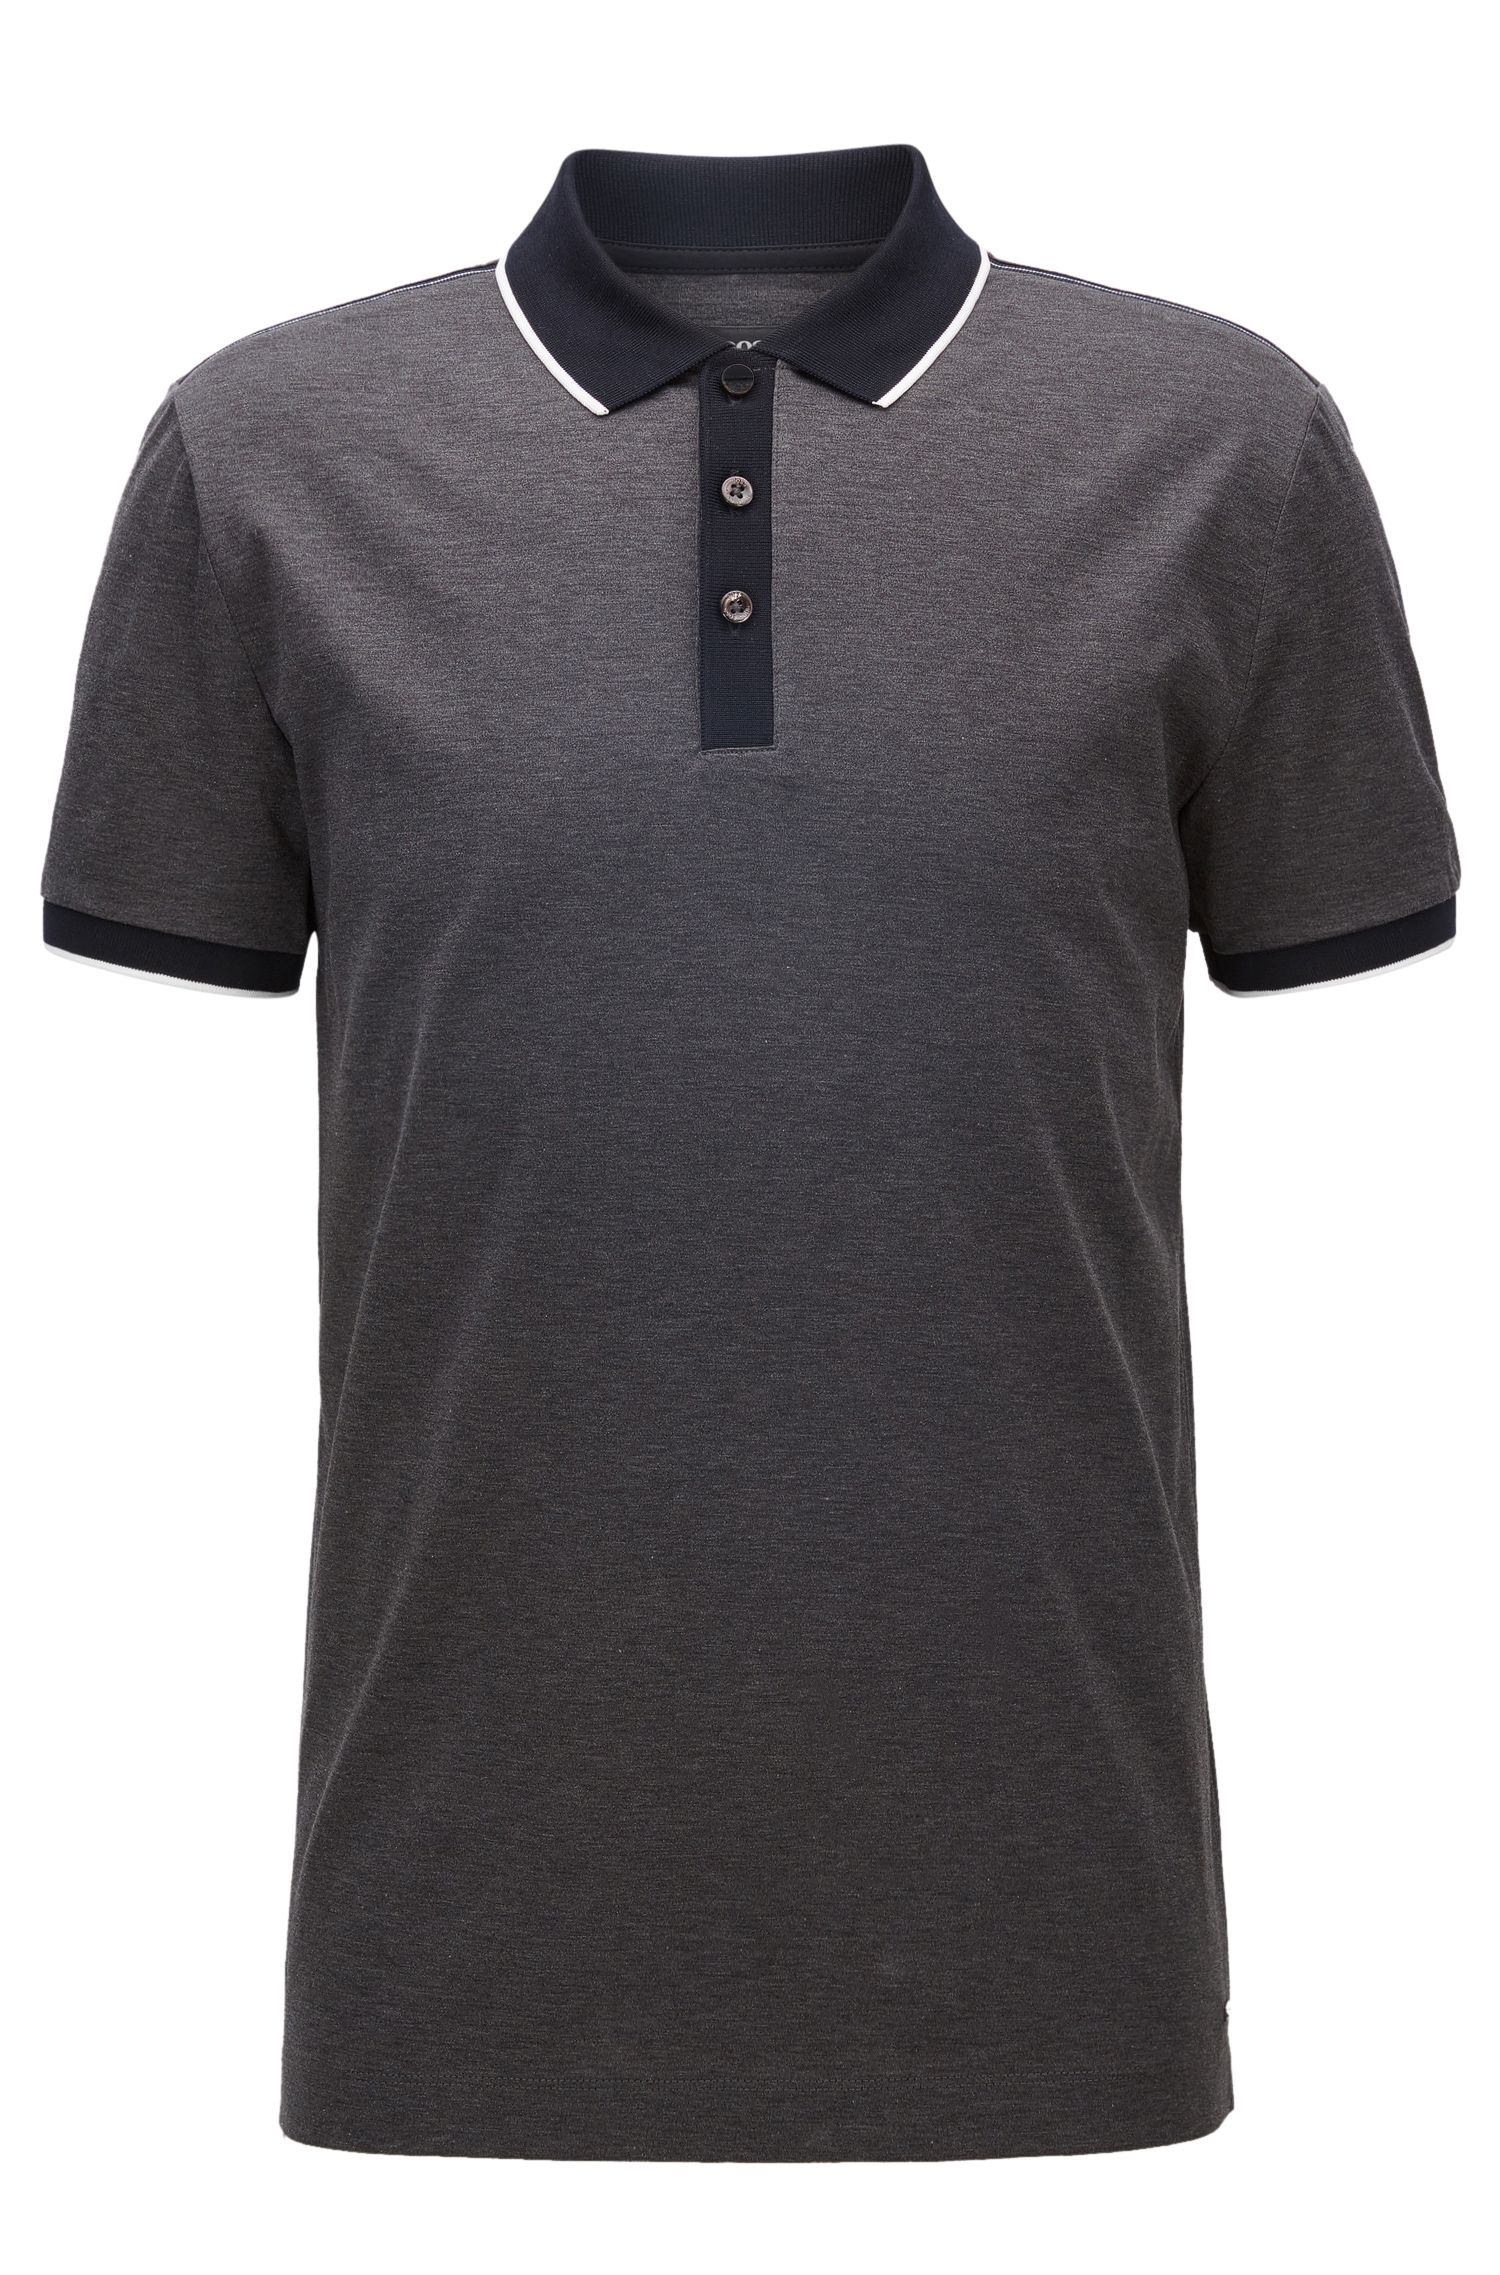 'Phillipson' | Coloblocked Cotton Polo Shirt